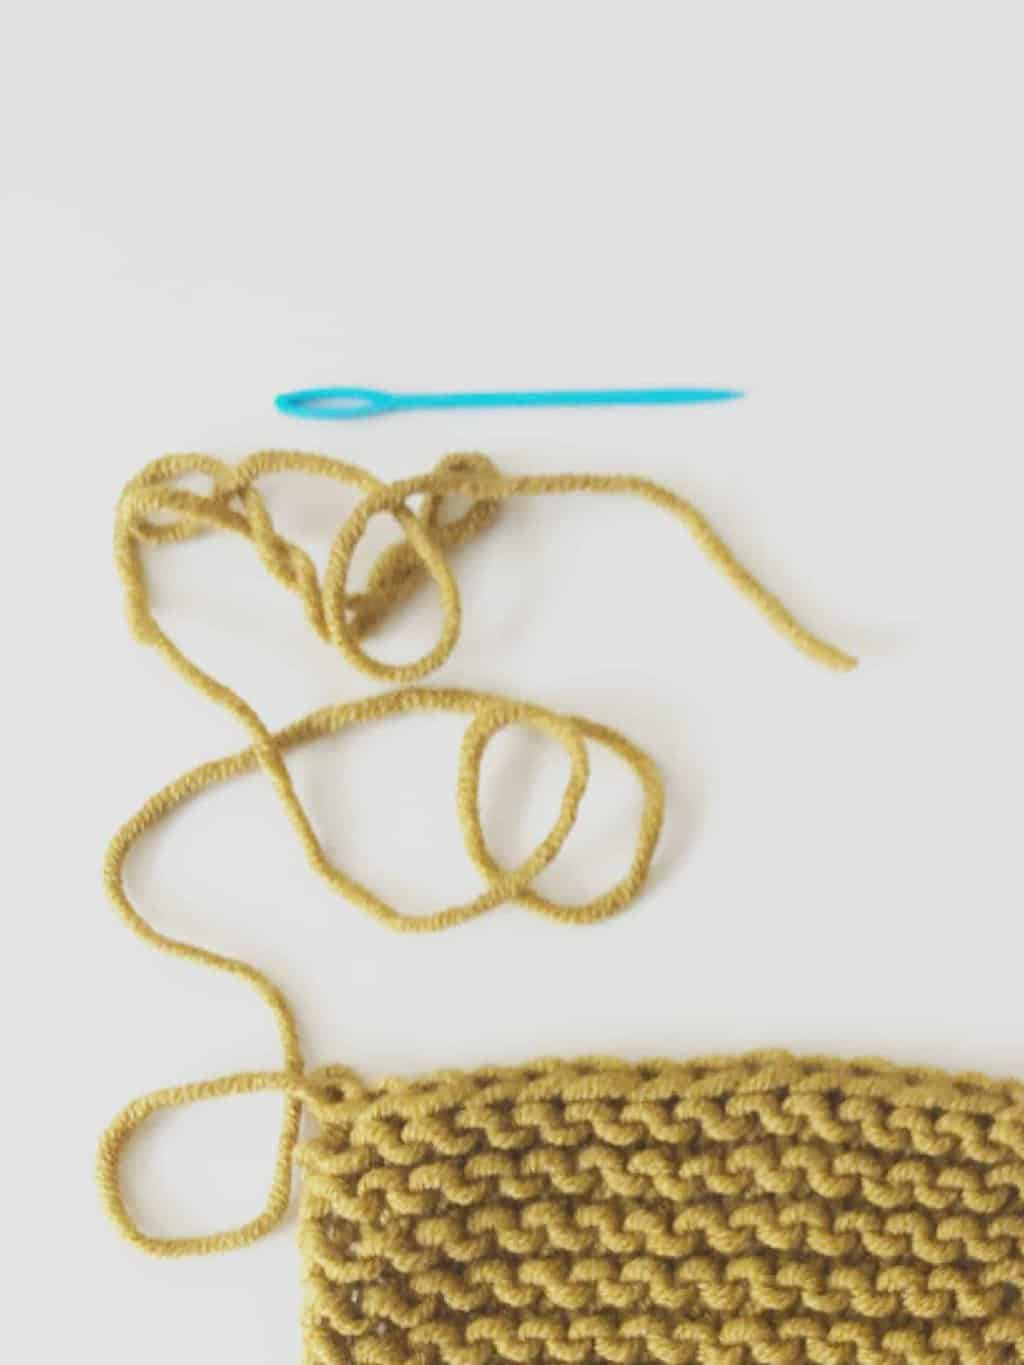 picture of yarn needle and knit pocket